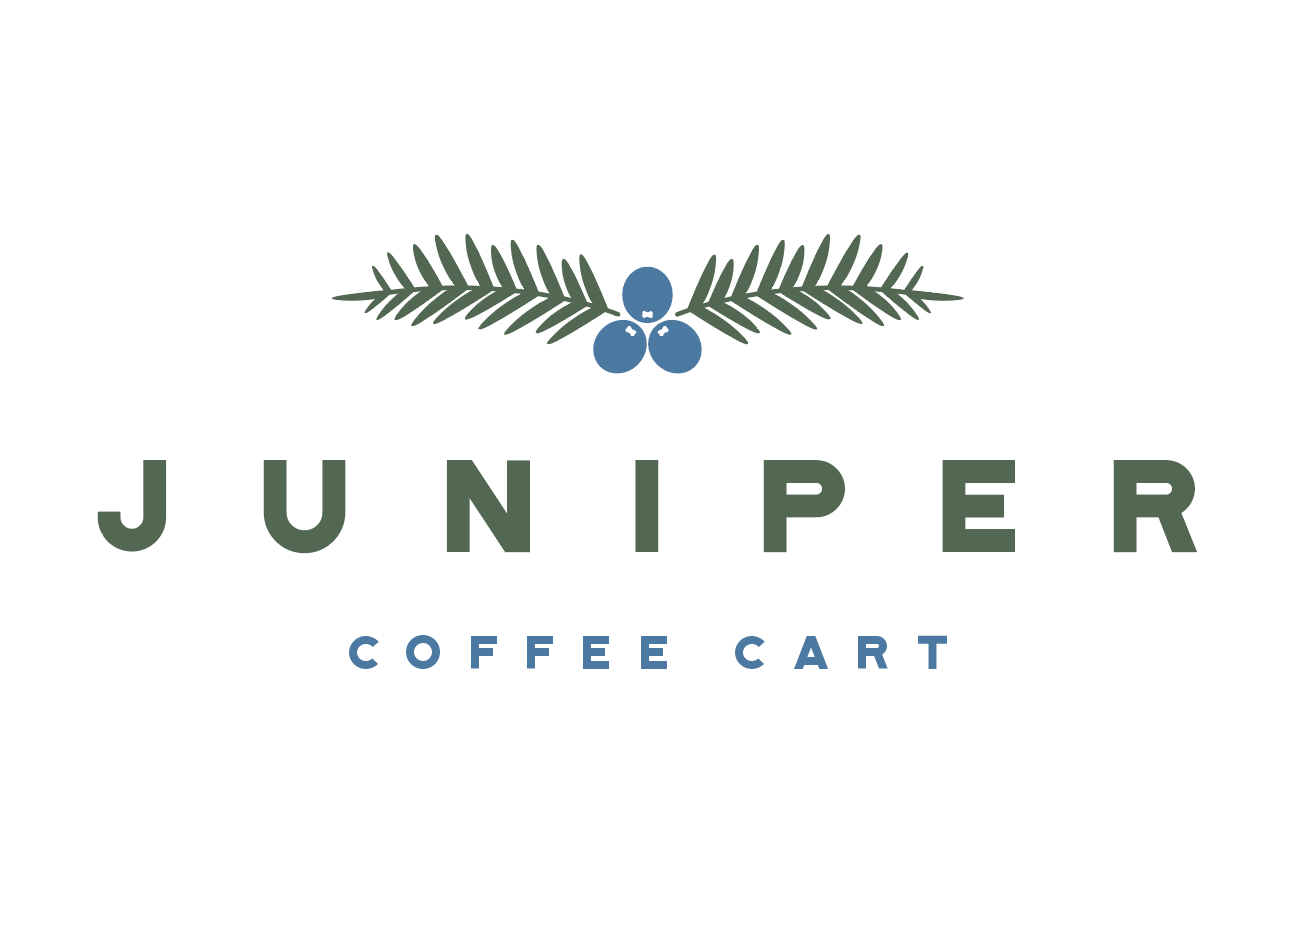 Juniper Coffee Cart